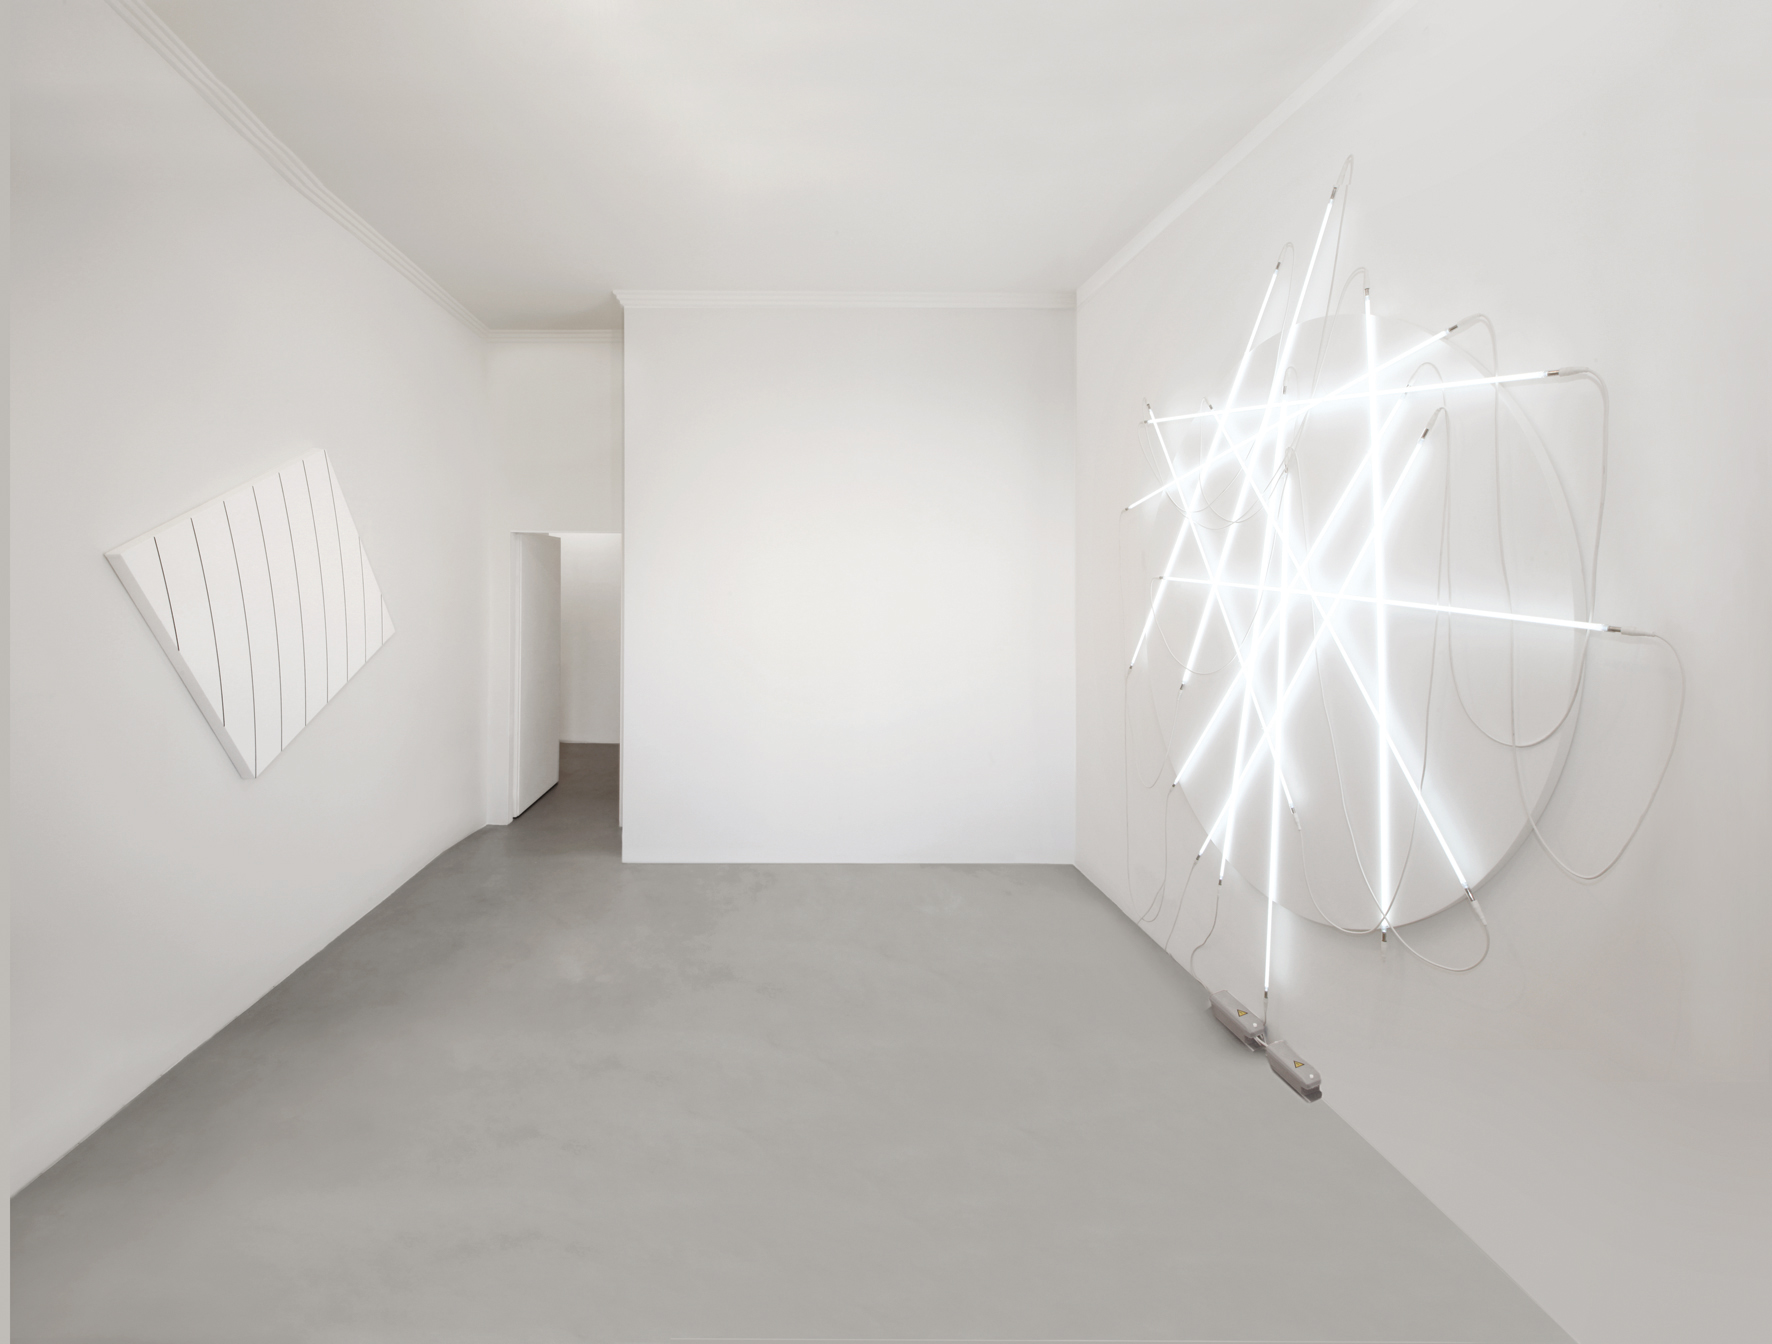 François Morellet - Courbage n° 2 - 2011 / Lunatic weeping and neonly n° 3 - 2010 - courtesy A arte Studio Invernizzi, Milano - Foto Bruno Bani